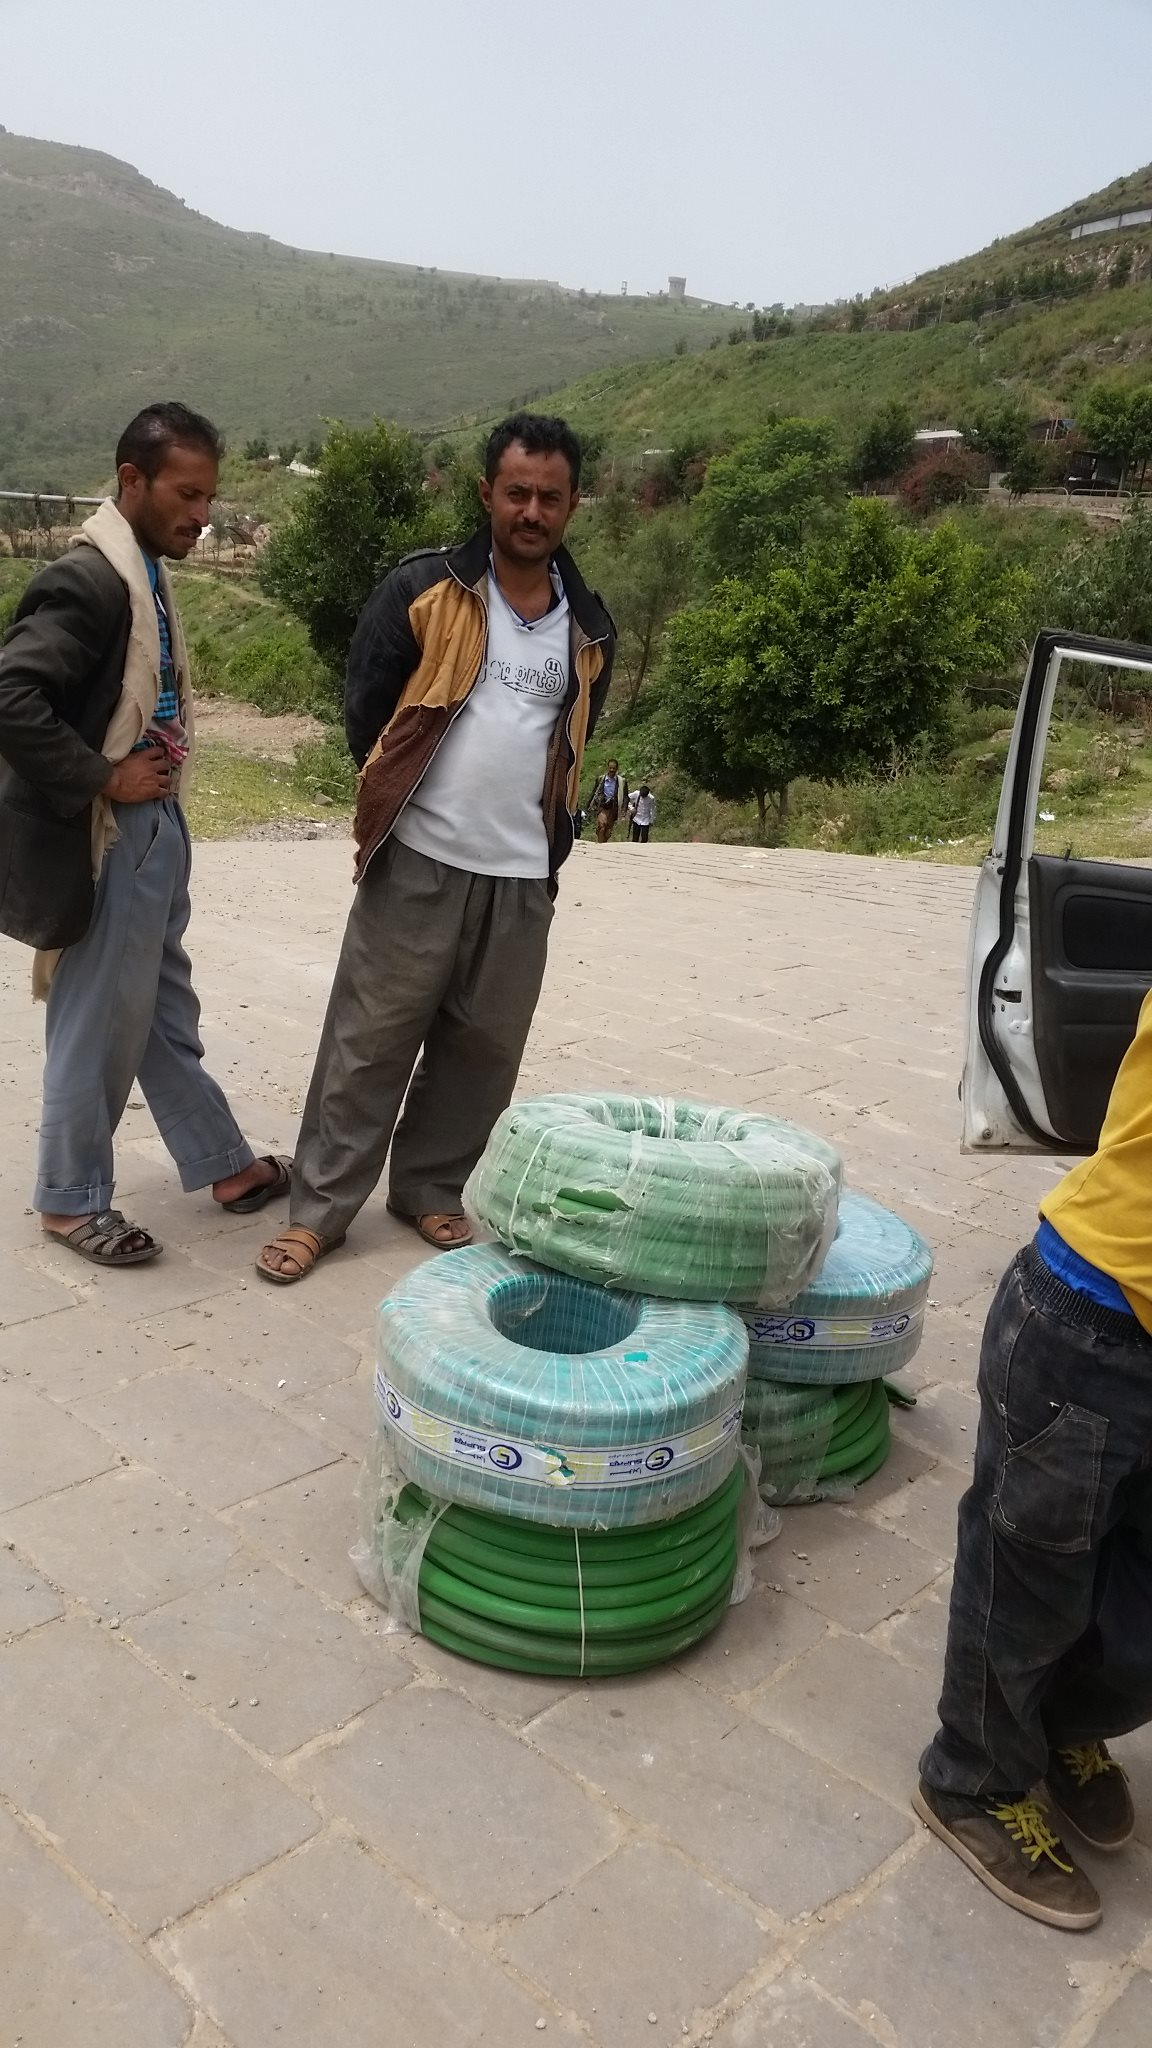 ibb zoo 12july 2017 DELIVERY OF HOSE WATER PIPE Kim's rescue mission.jpg